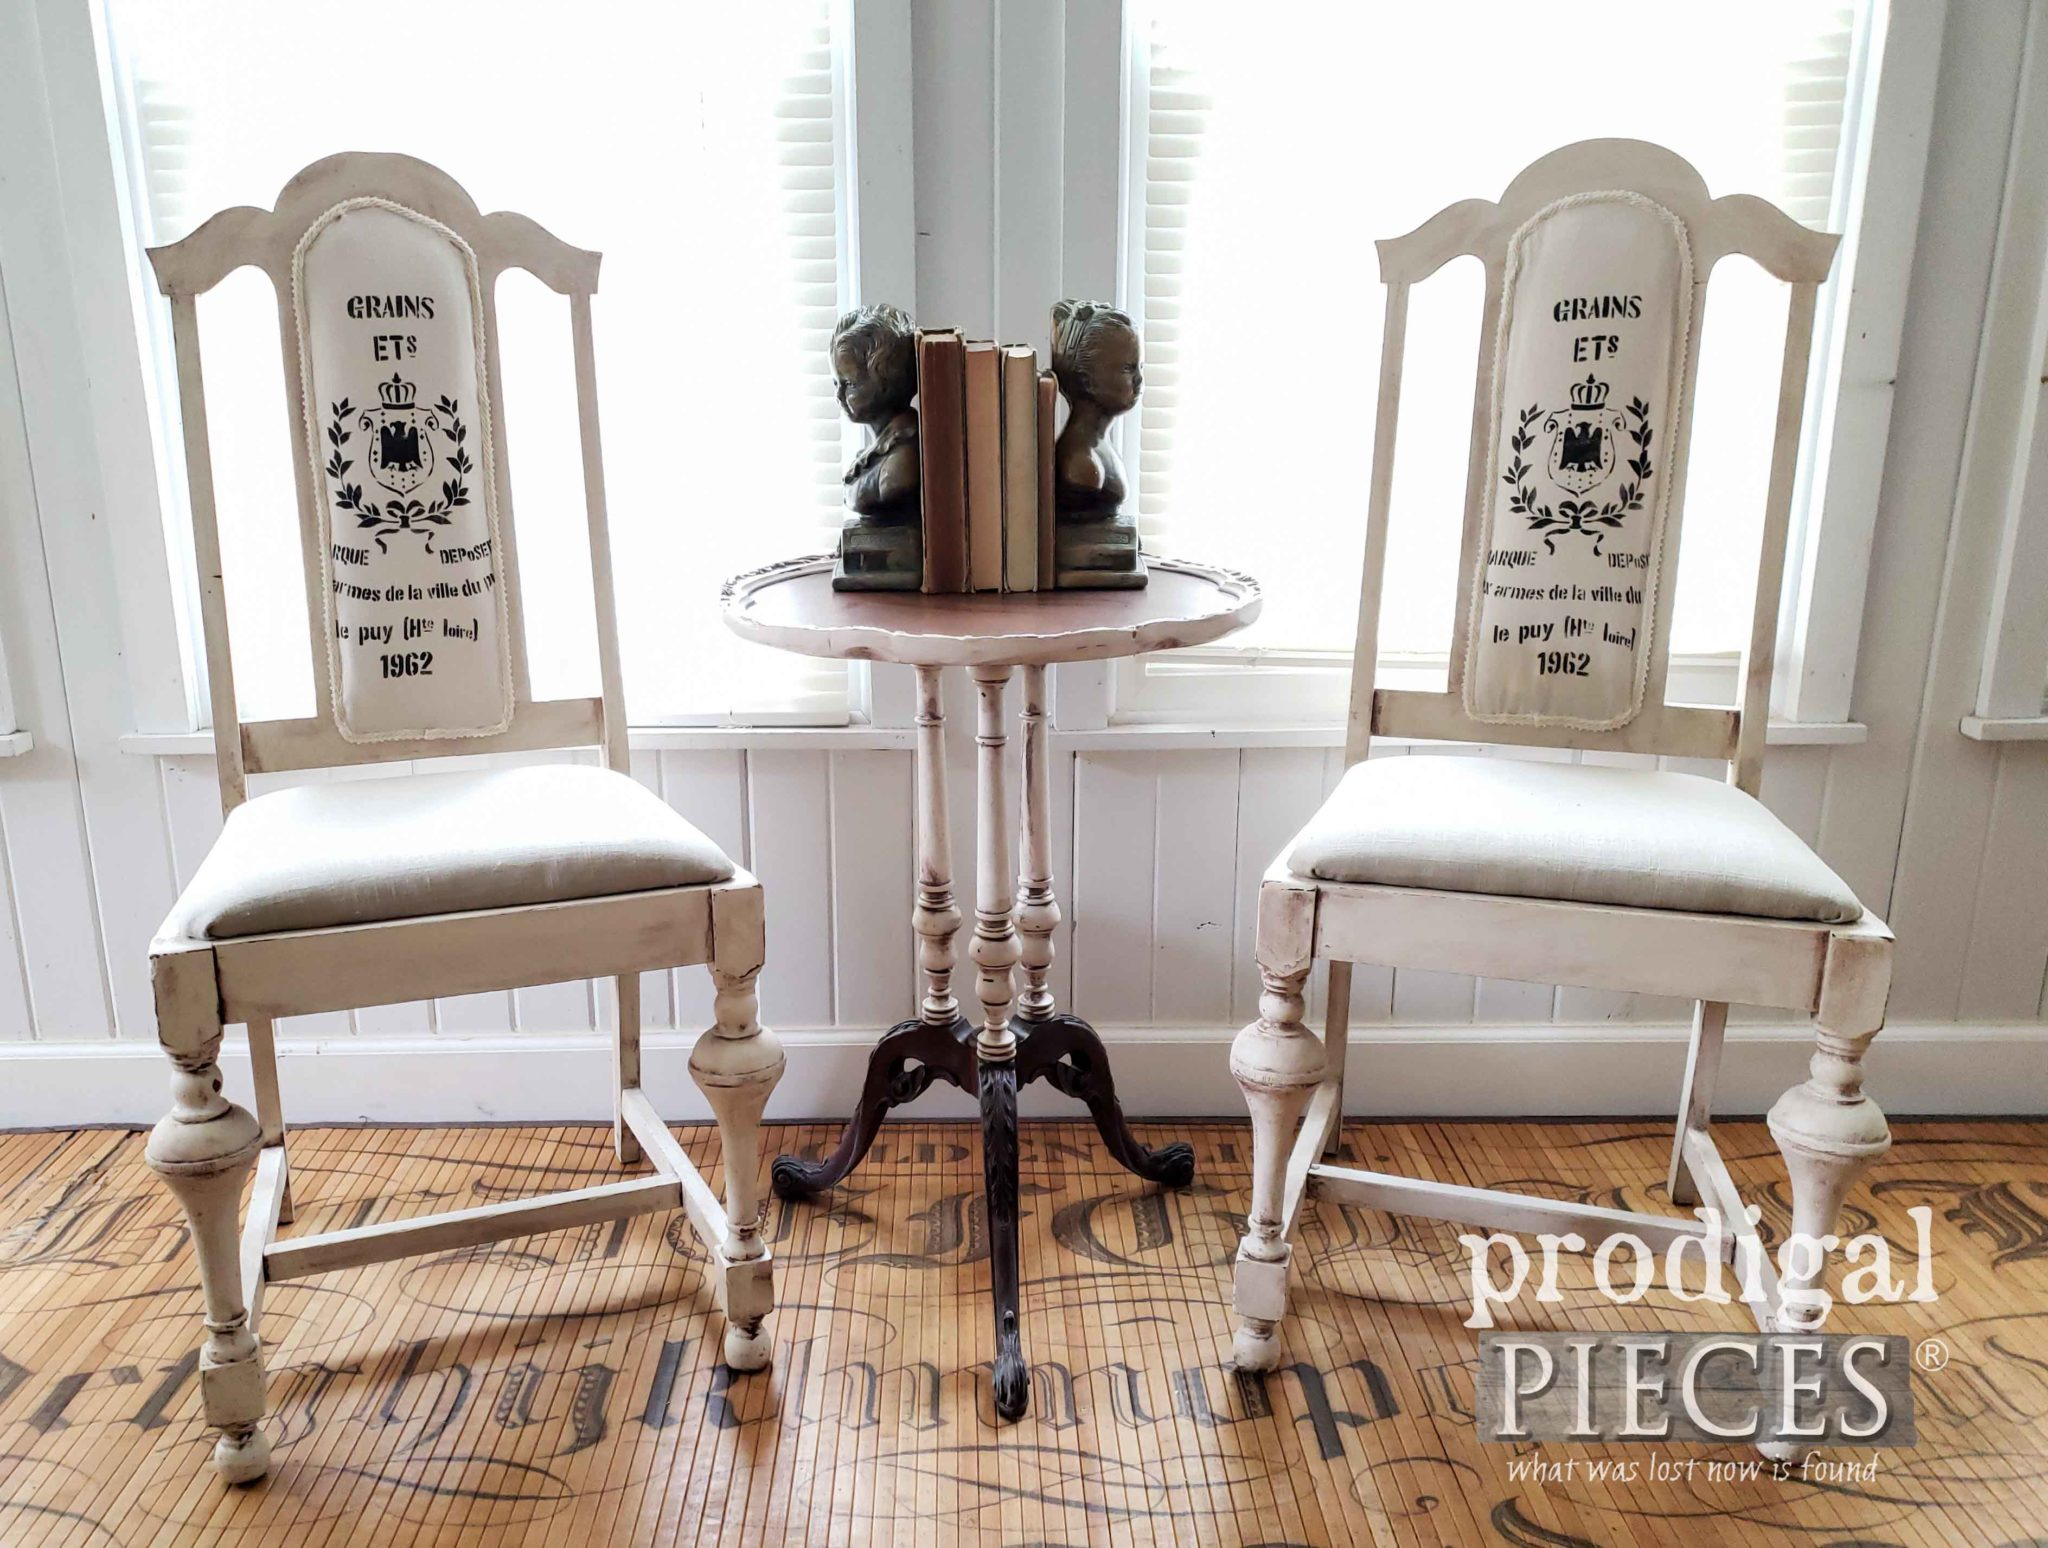 Broken Cane Chairs Made into Grain Sack Dining Chairs by Larissa of Prodigal Pieces | prodigalpieces.com #prodigalpieces #furniture #home #farmhouse #homedecor #diy